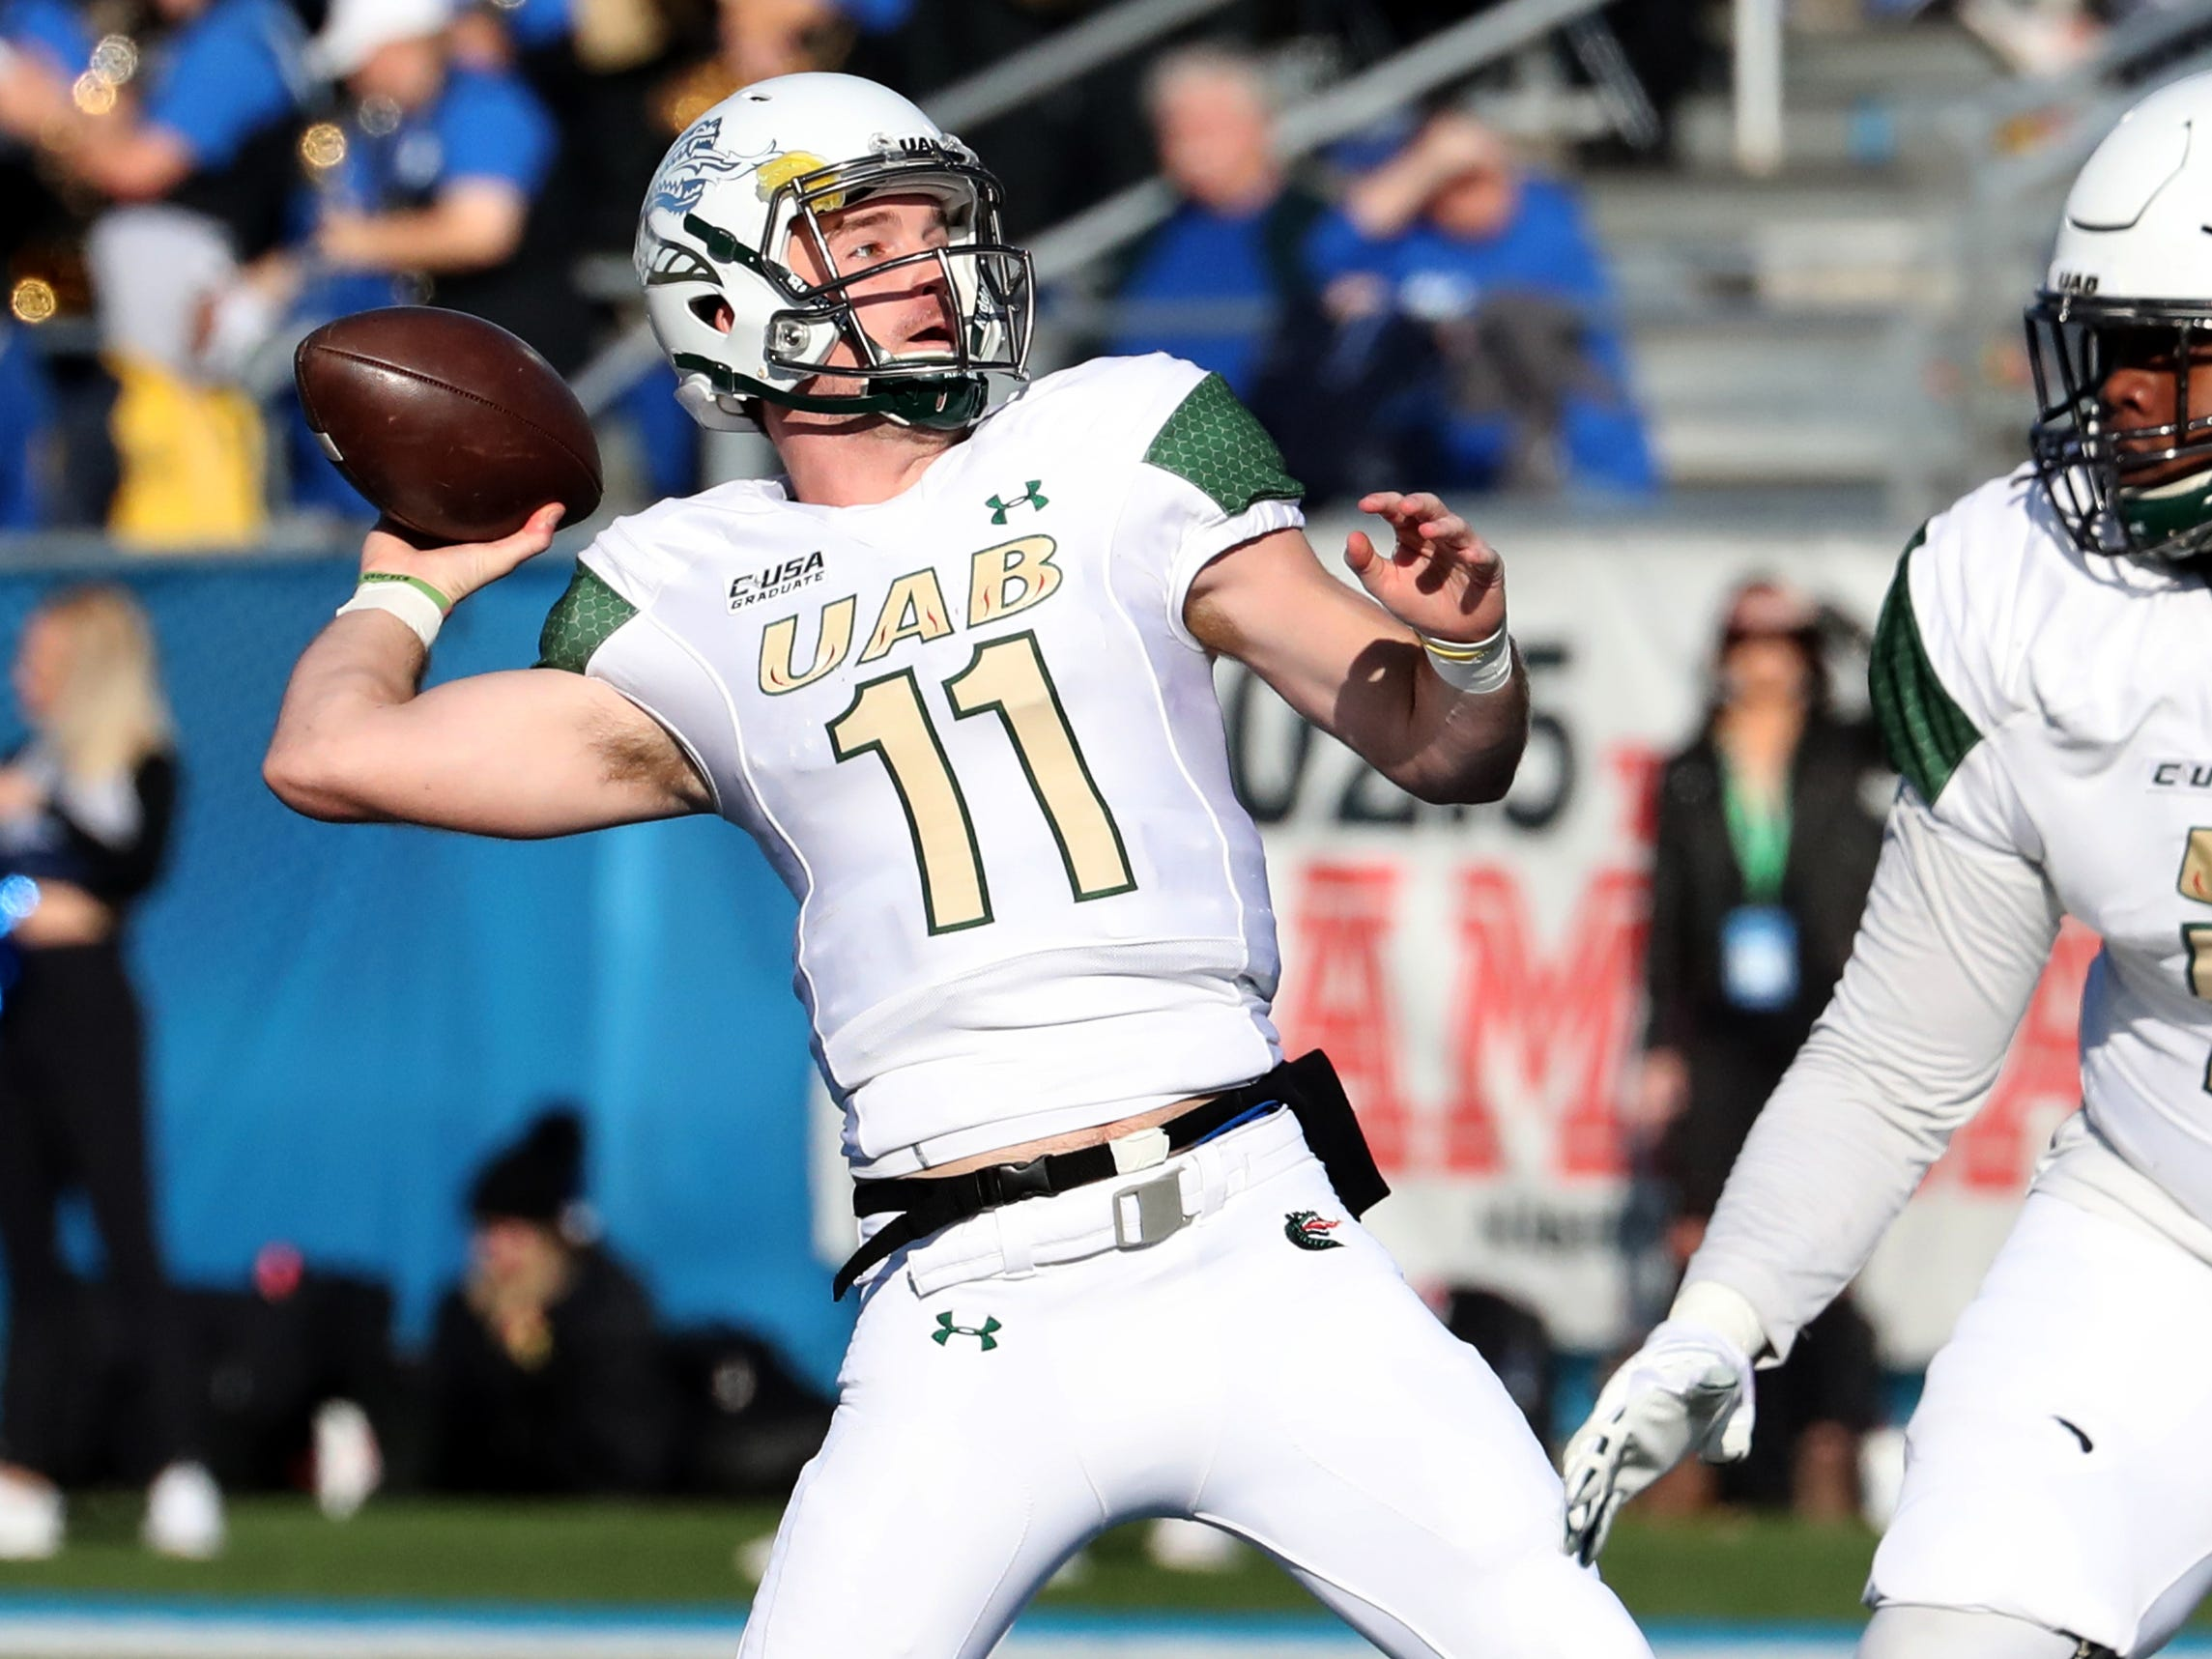 UAB's quarterback AJ Erdely (11) passes the ball during the game against MTSU at MTSU on Saturday, Nov. 24, 2018.